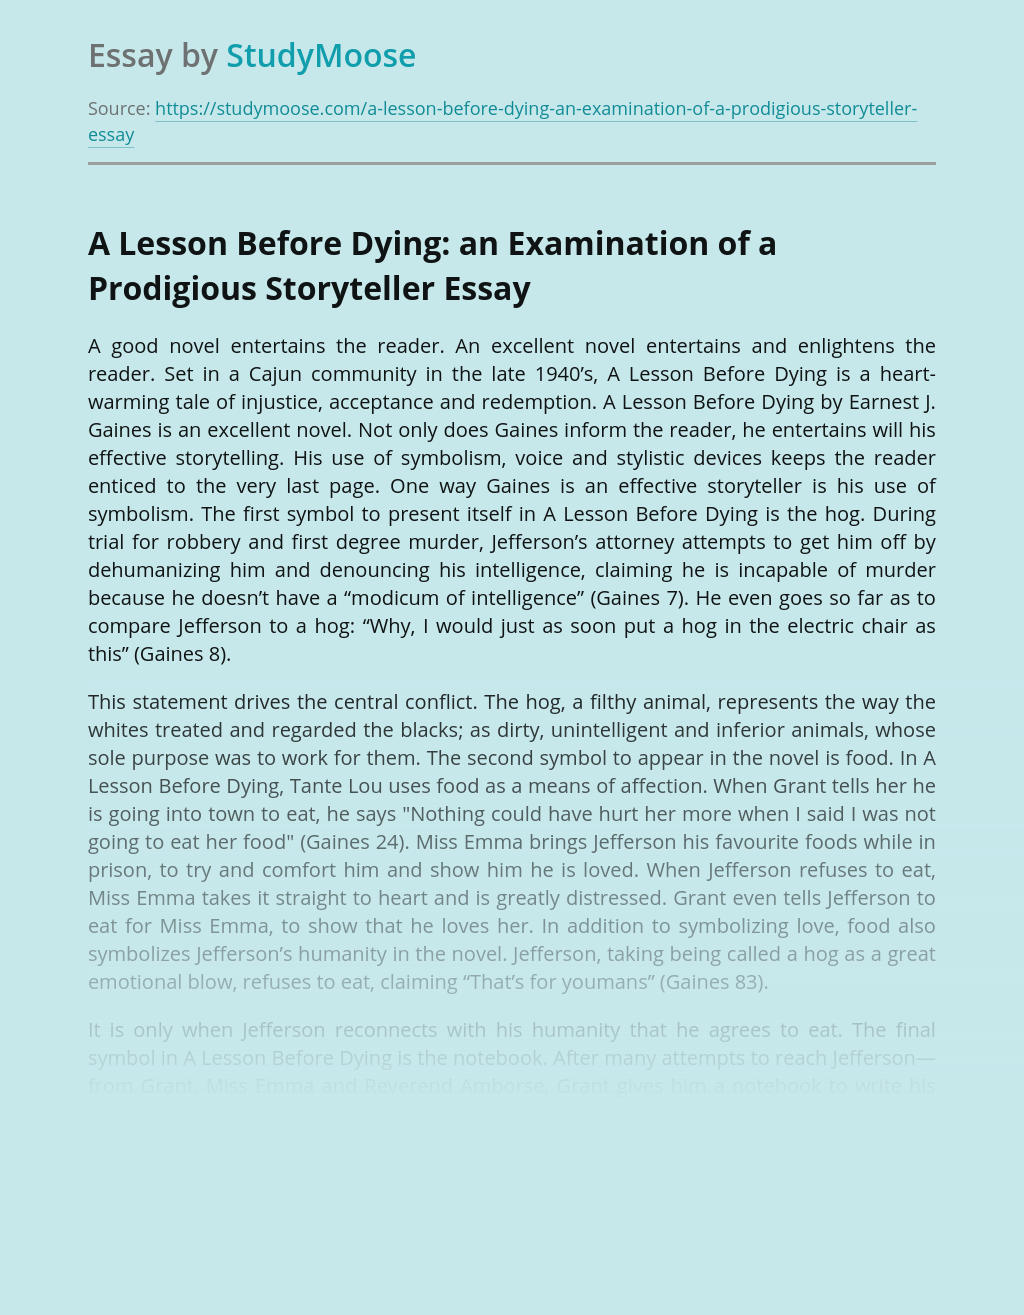 A Lesson Before Dying: an Examination of a Prodigious Storyteller